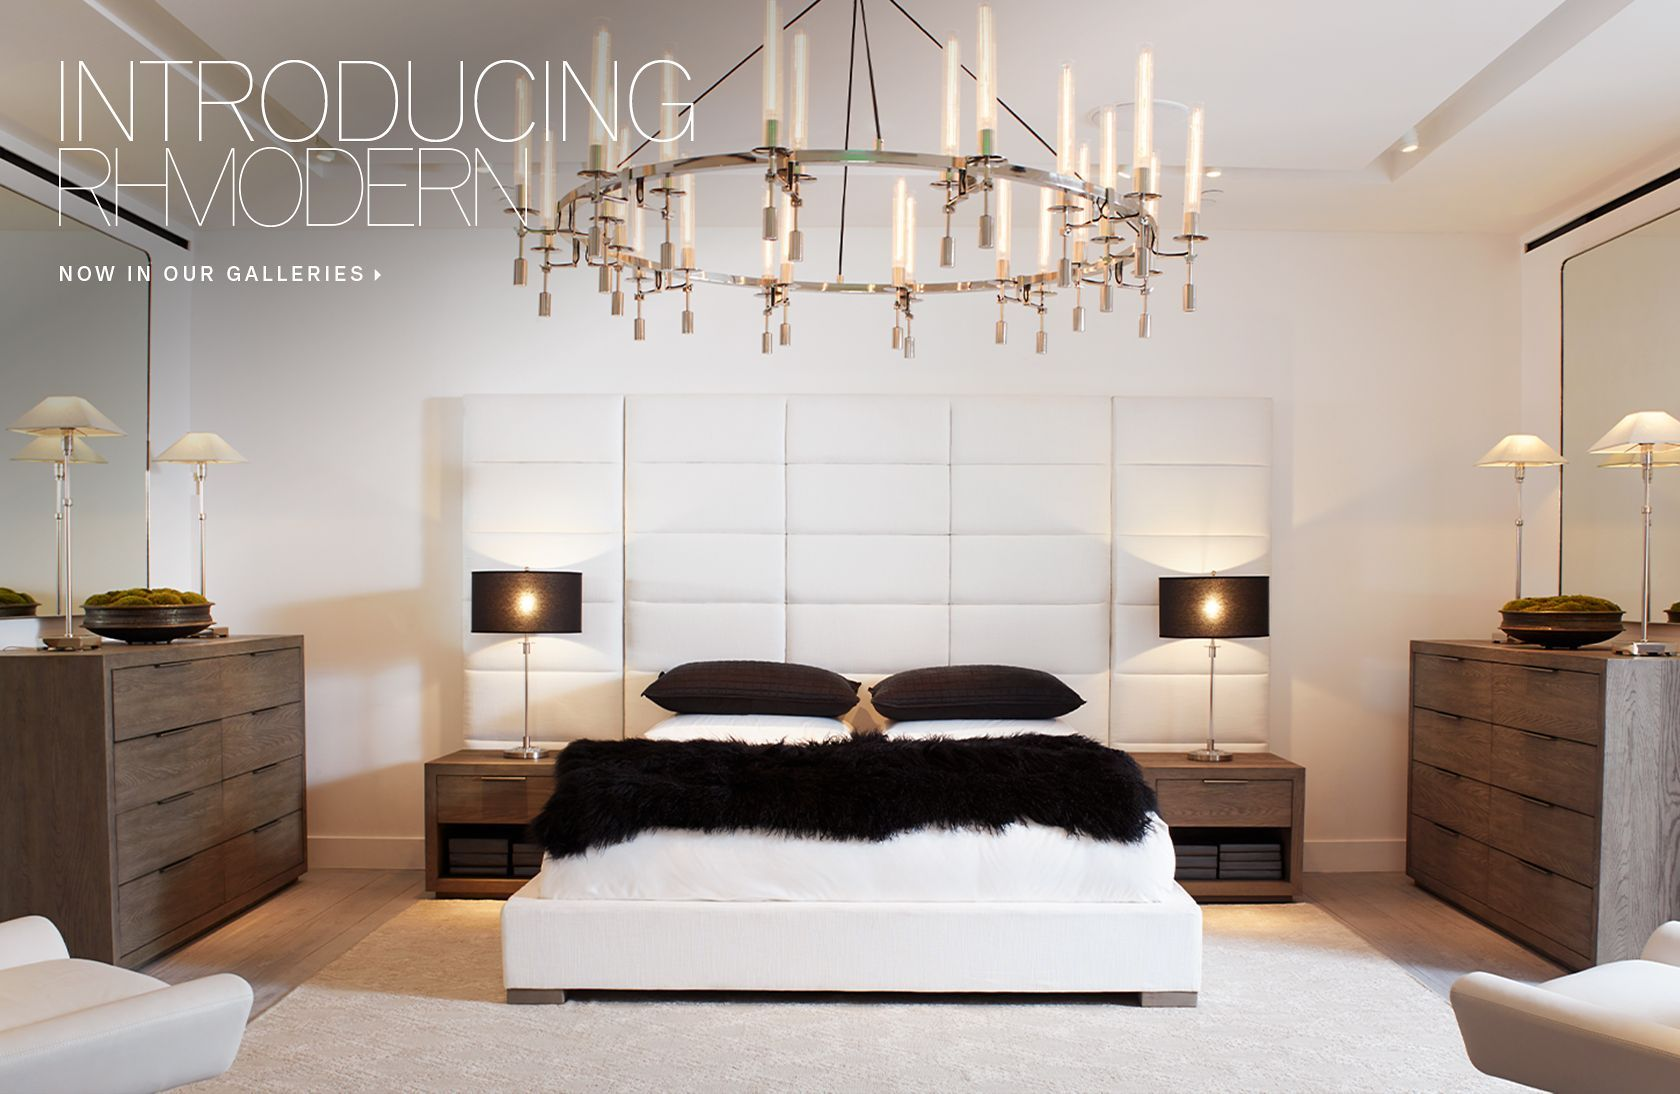 Introducing Rh Modern Now In Our Galleries Beautiful Houses Interior Rh Modern Modern Room